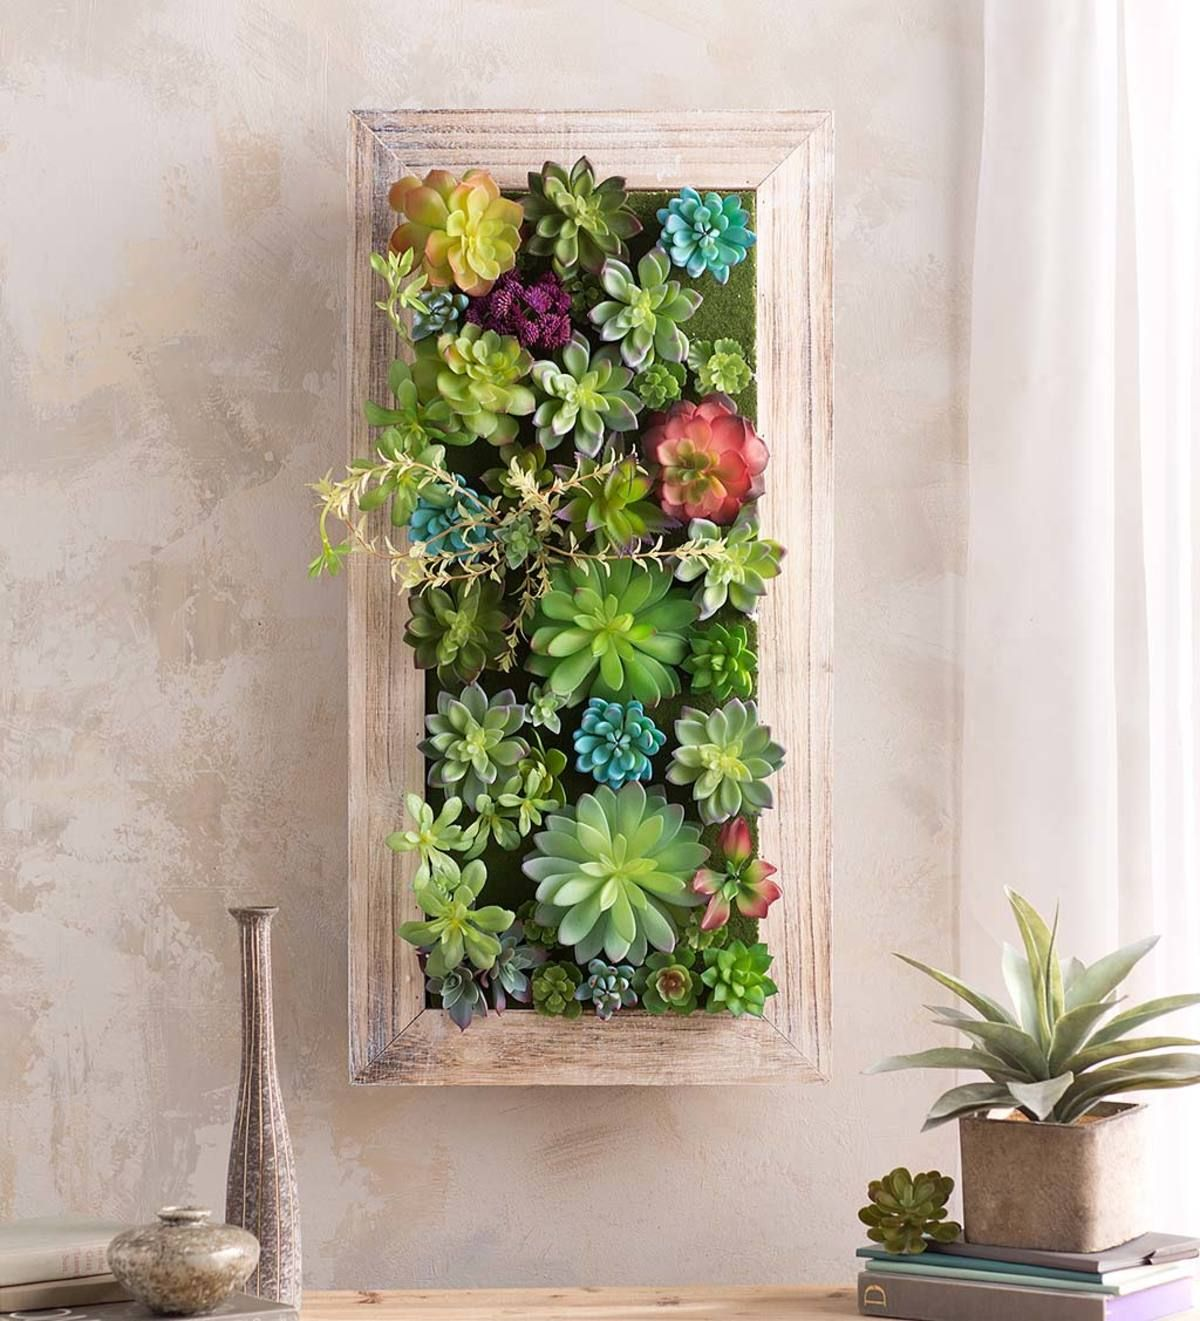 This Unique Faux Succulent Framed Wall Art Adds A Natural Flair To Your Decor Without Having To Worry About Succulent Frame Succulent Wall Art Faux Succulents